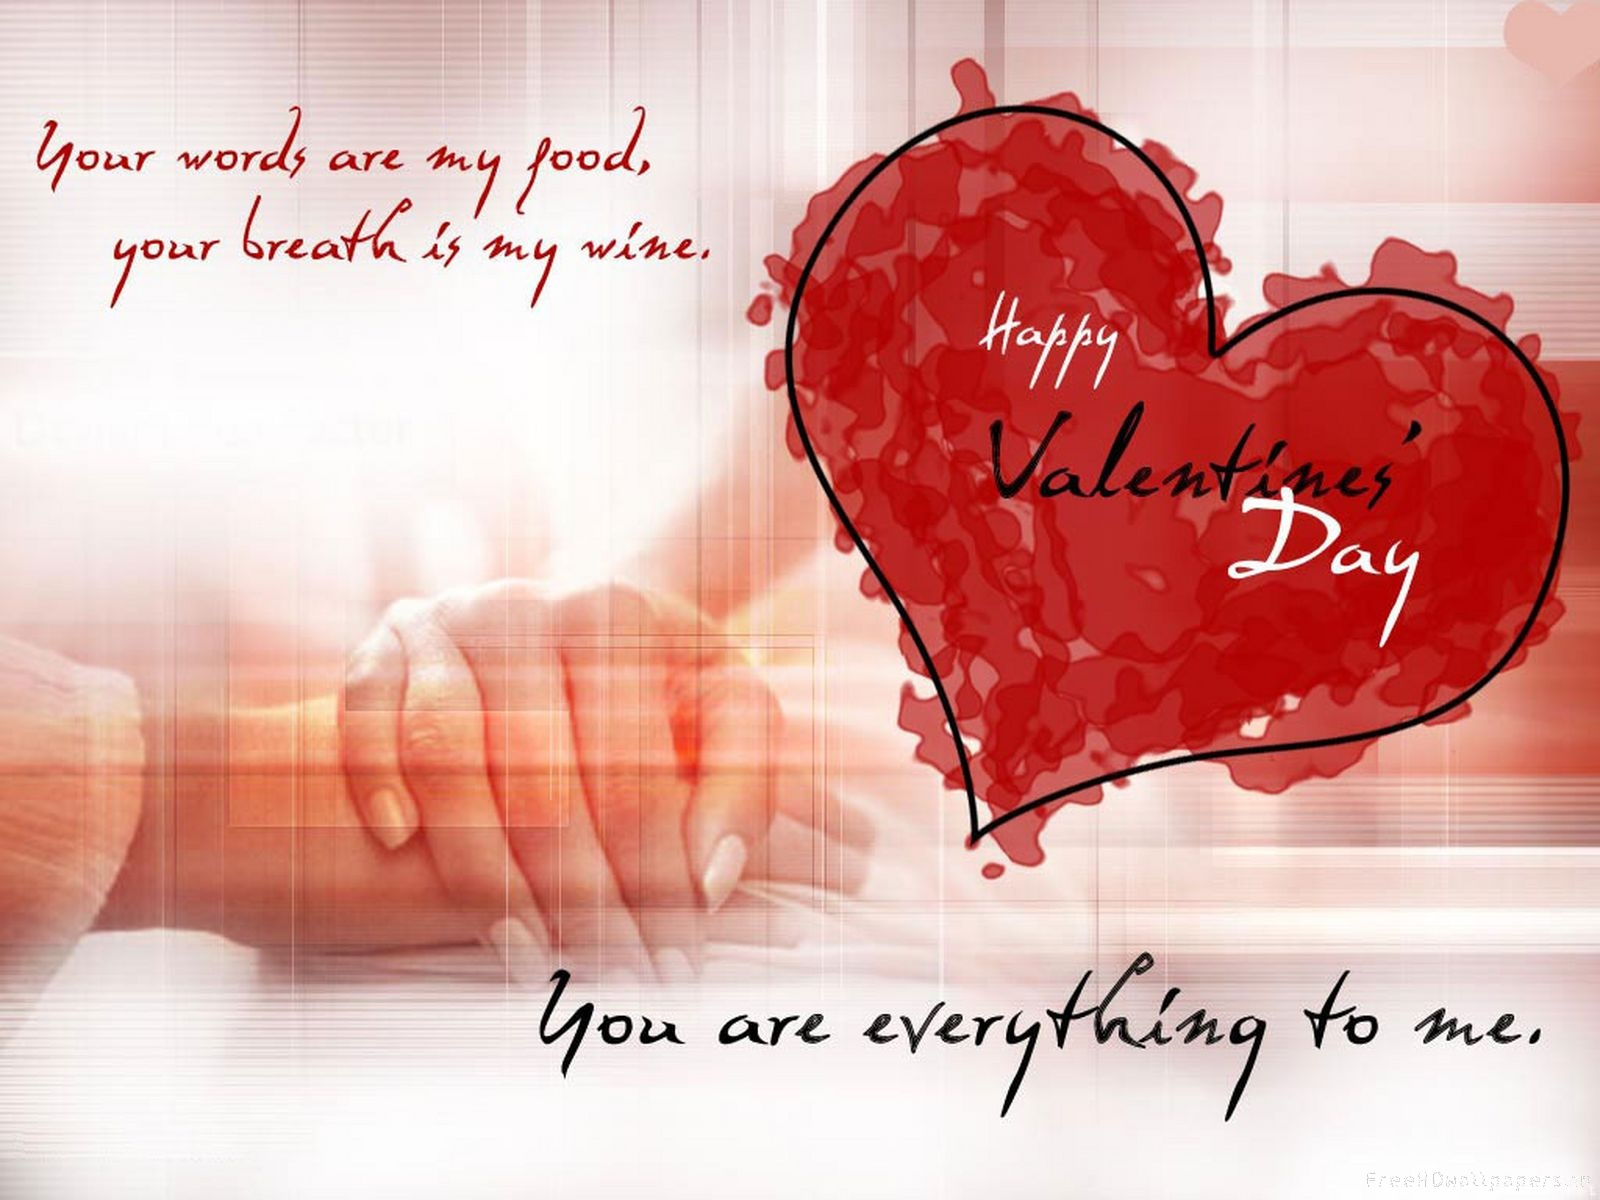 Valentine Day Greeting Wallpapers